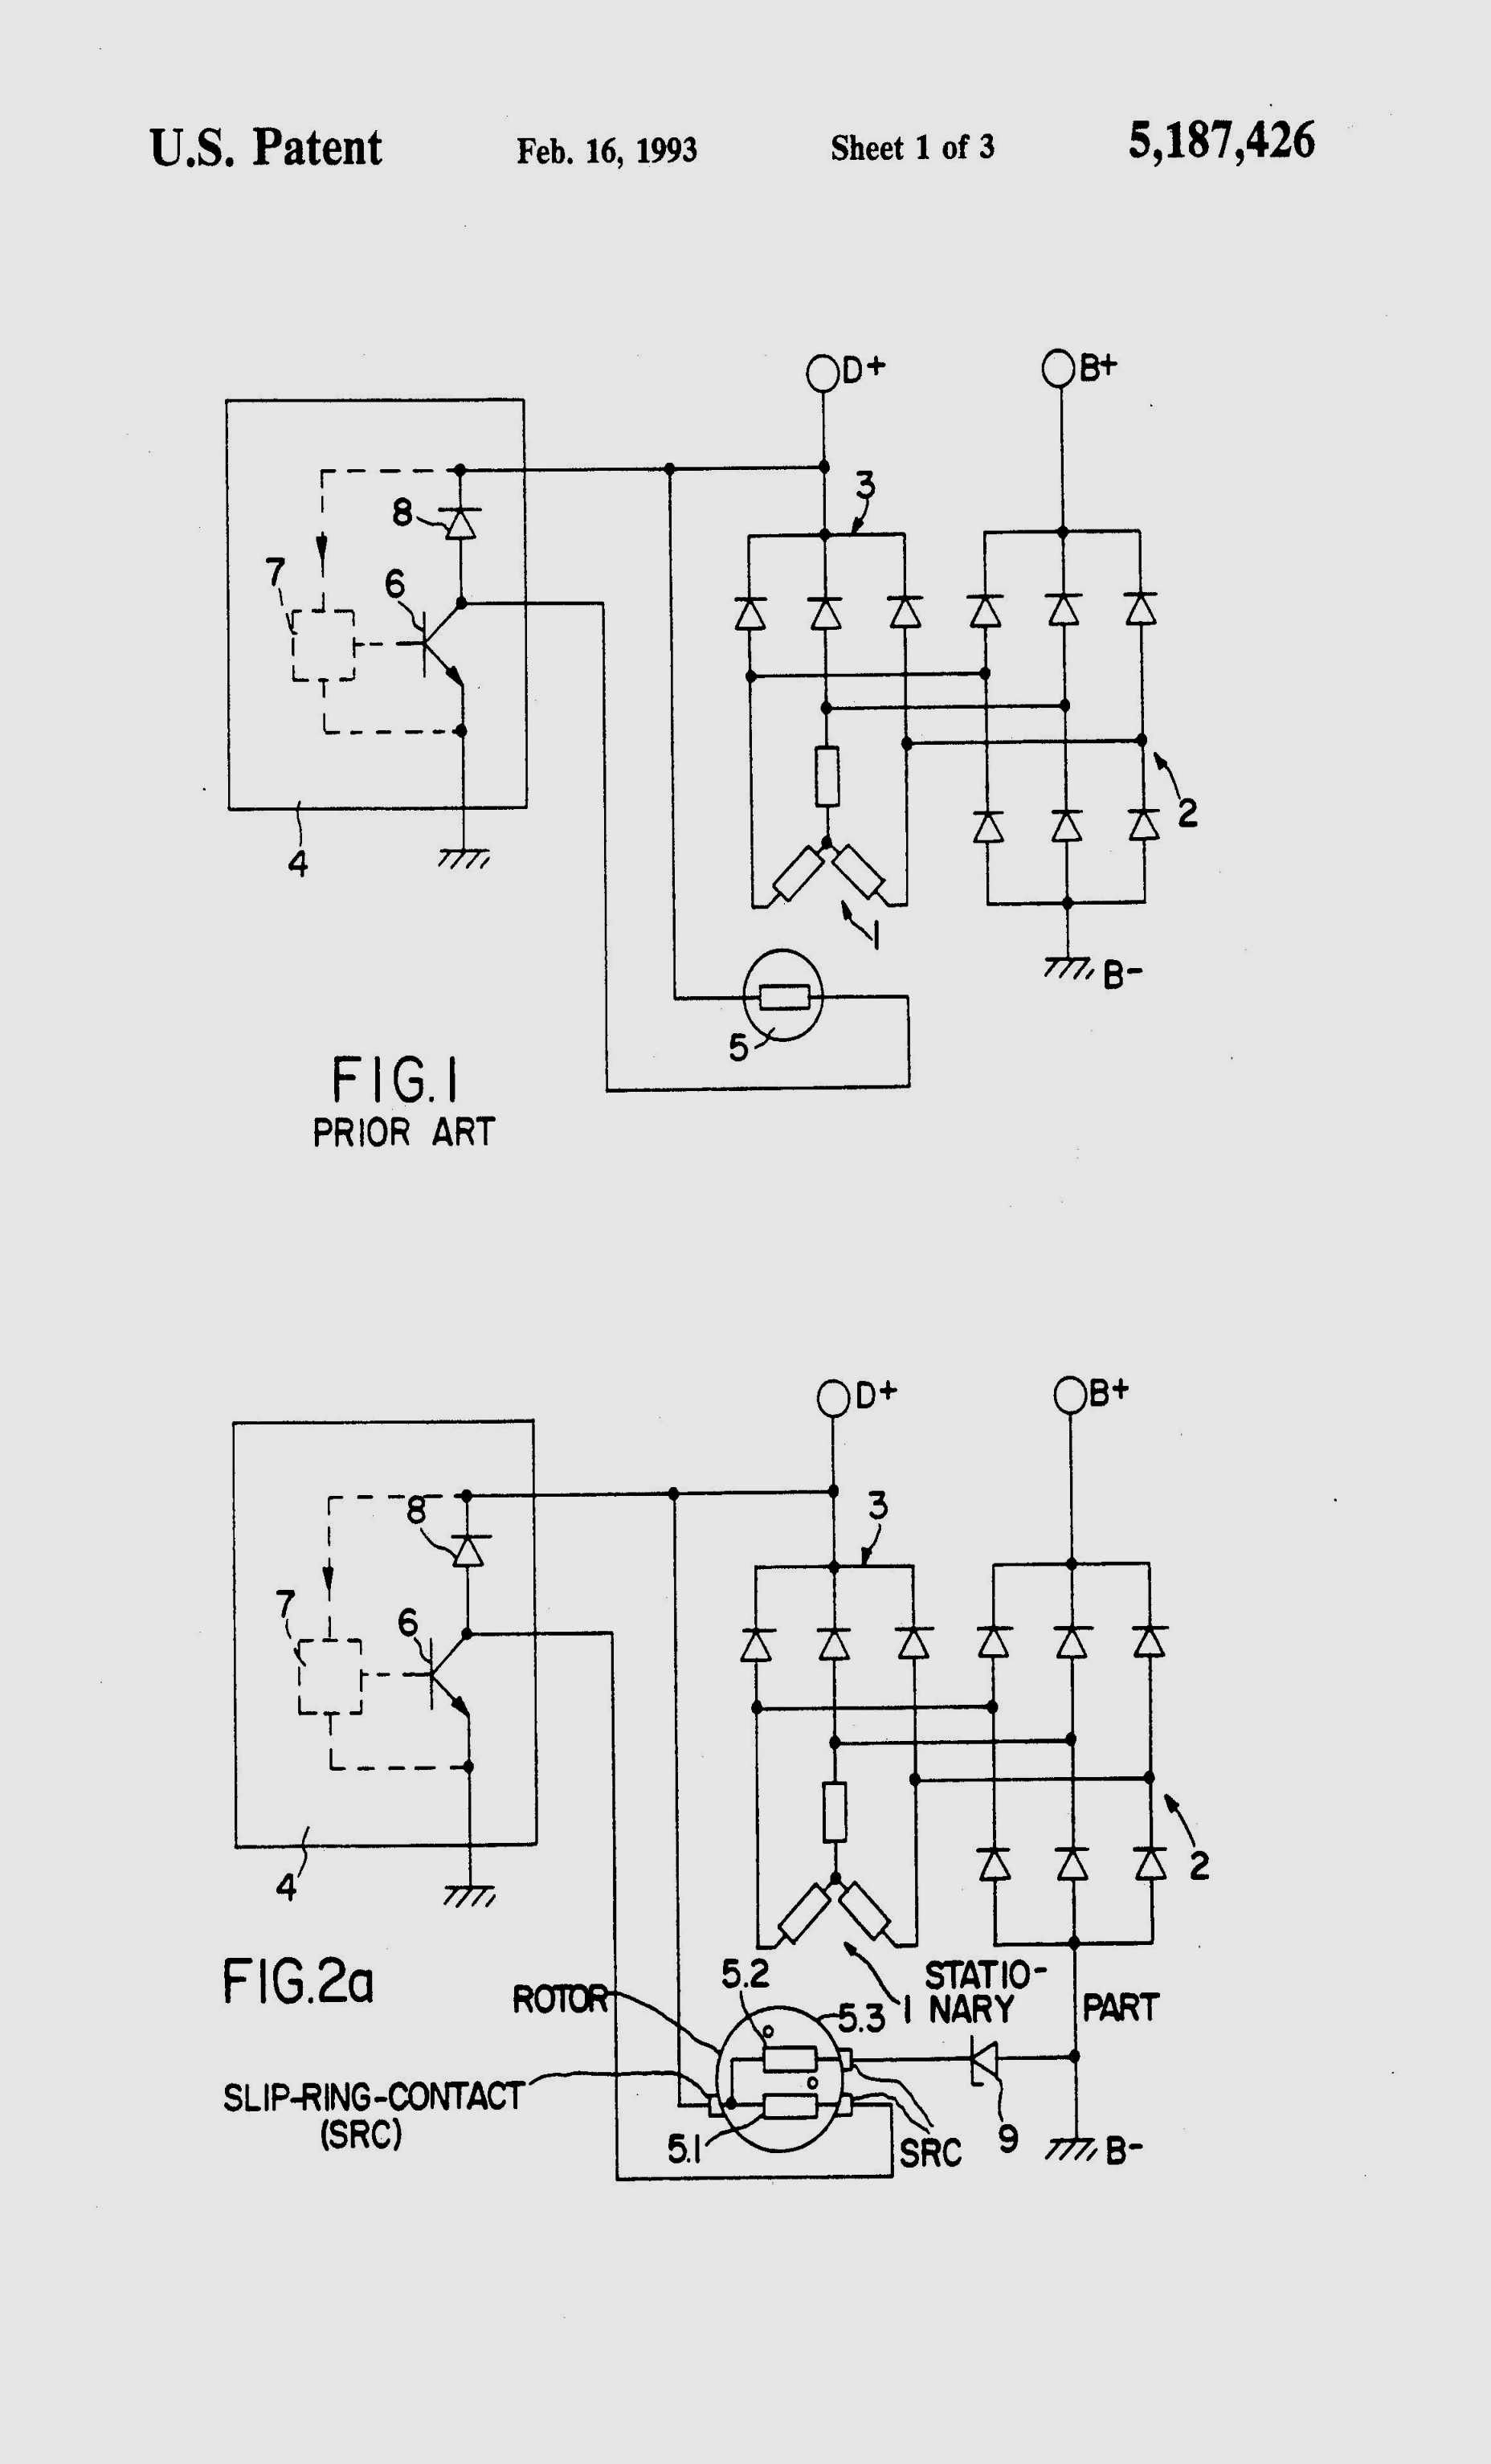 Elegant Wiring Diagram astra H #diagrams #digramssample #